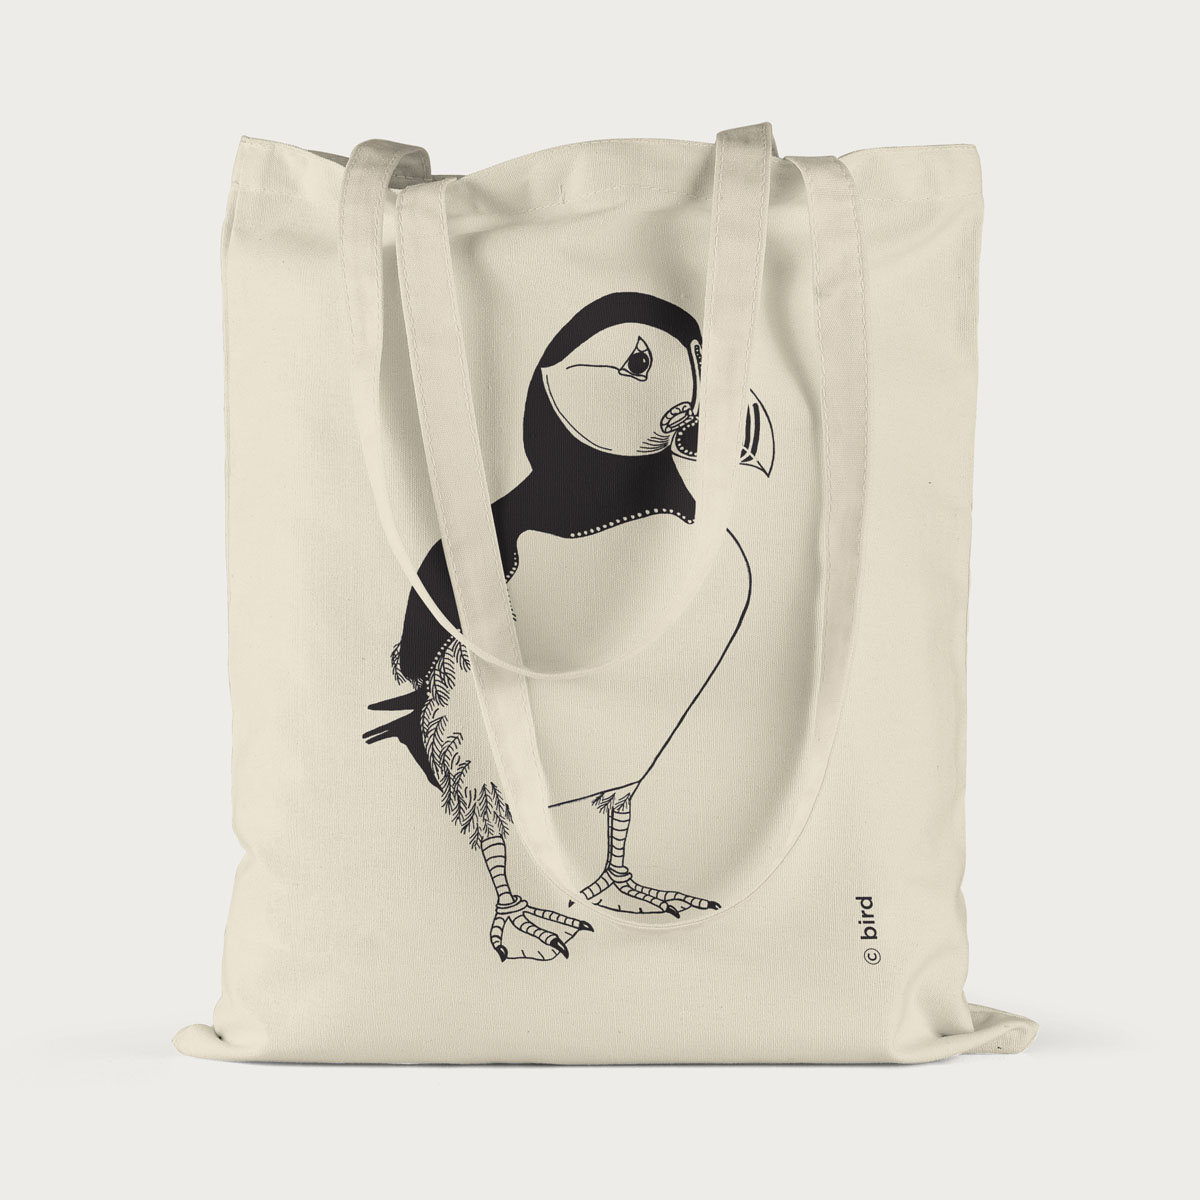 Puffin Screen Printed Cotton Tote Bag